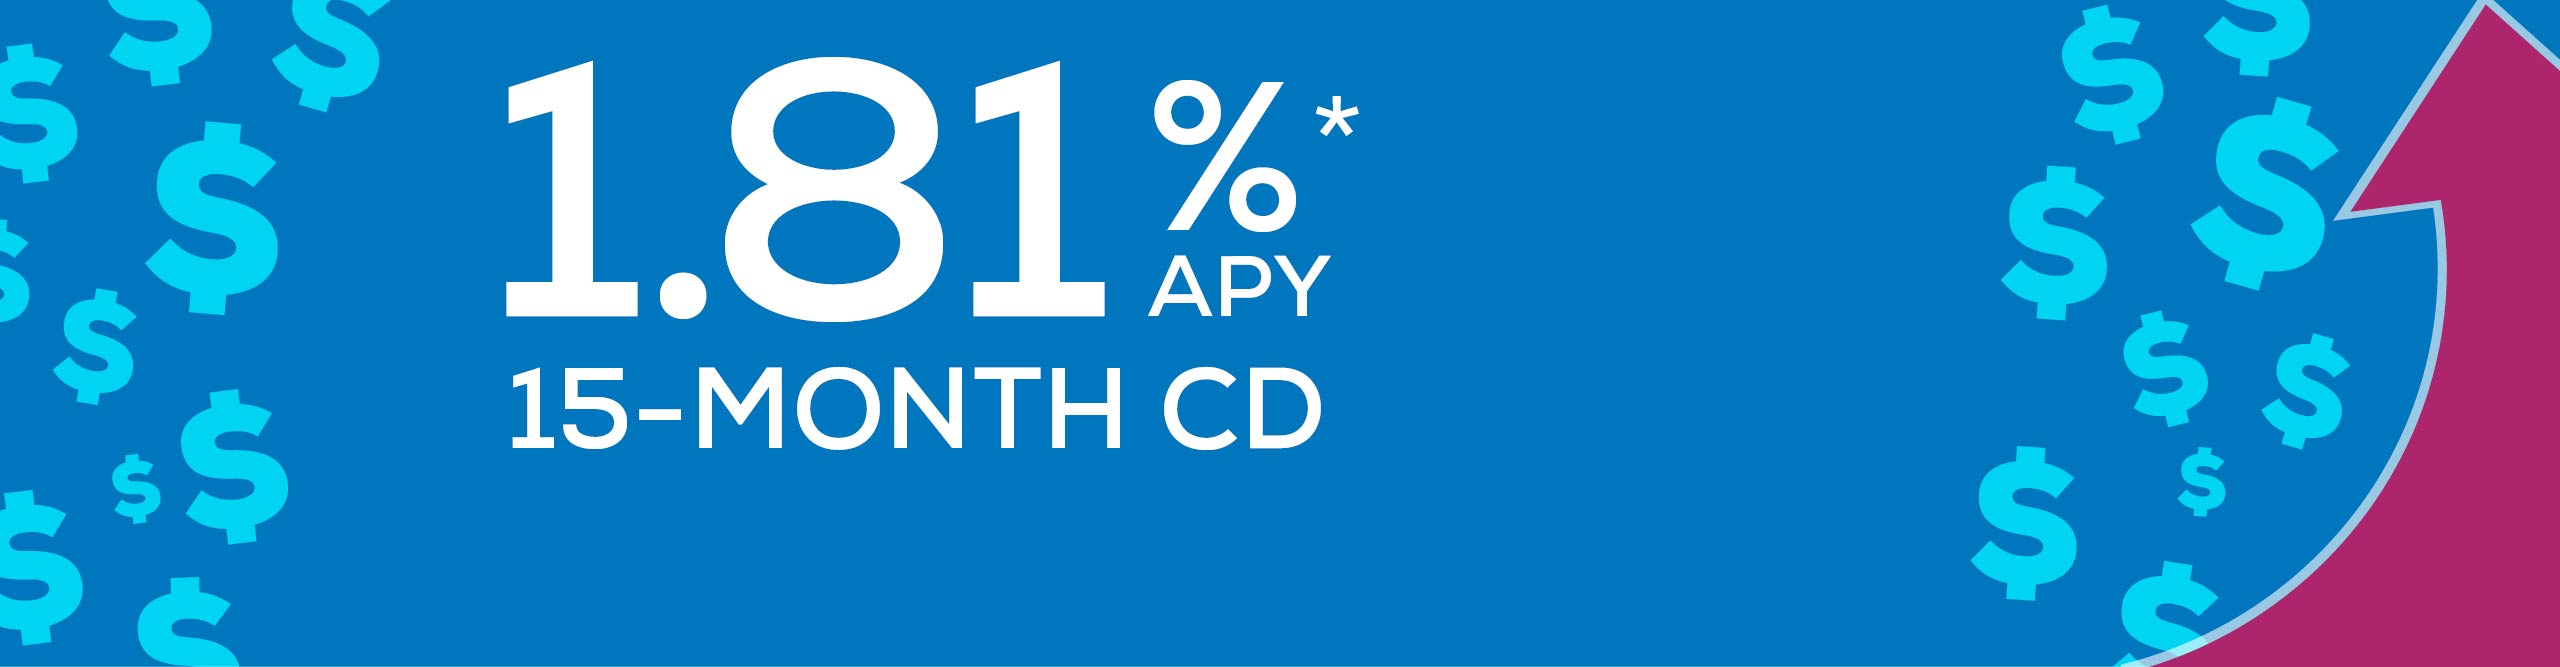 Earn 1.81% APY with our 15-month CD